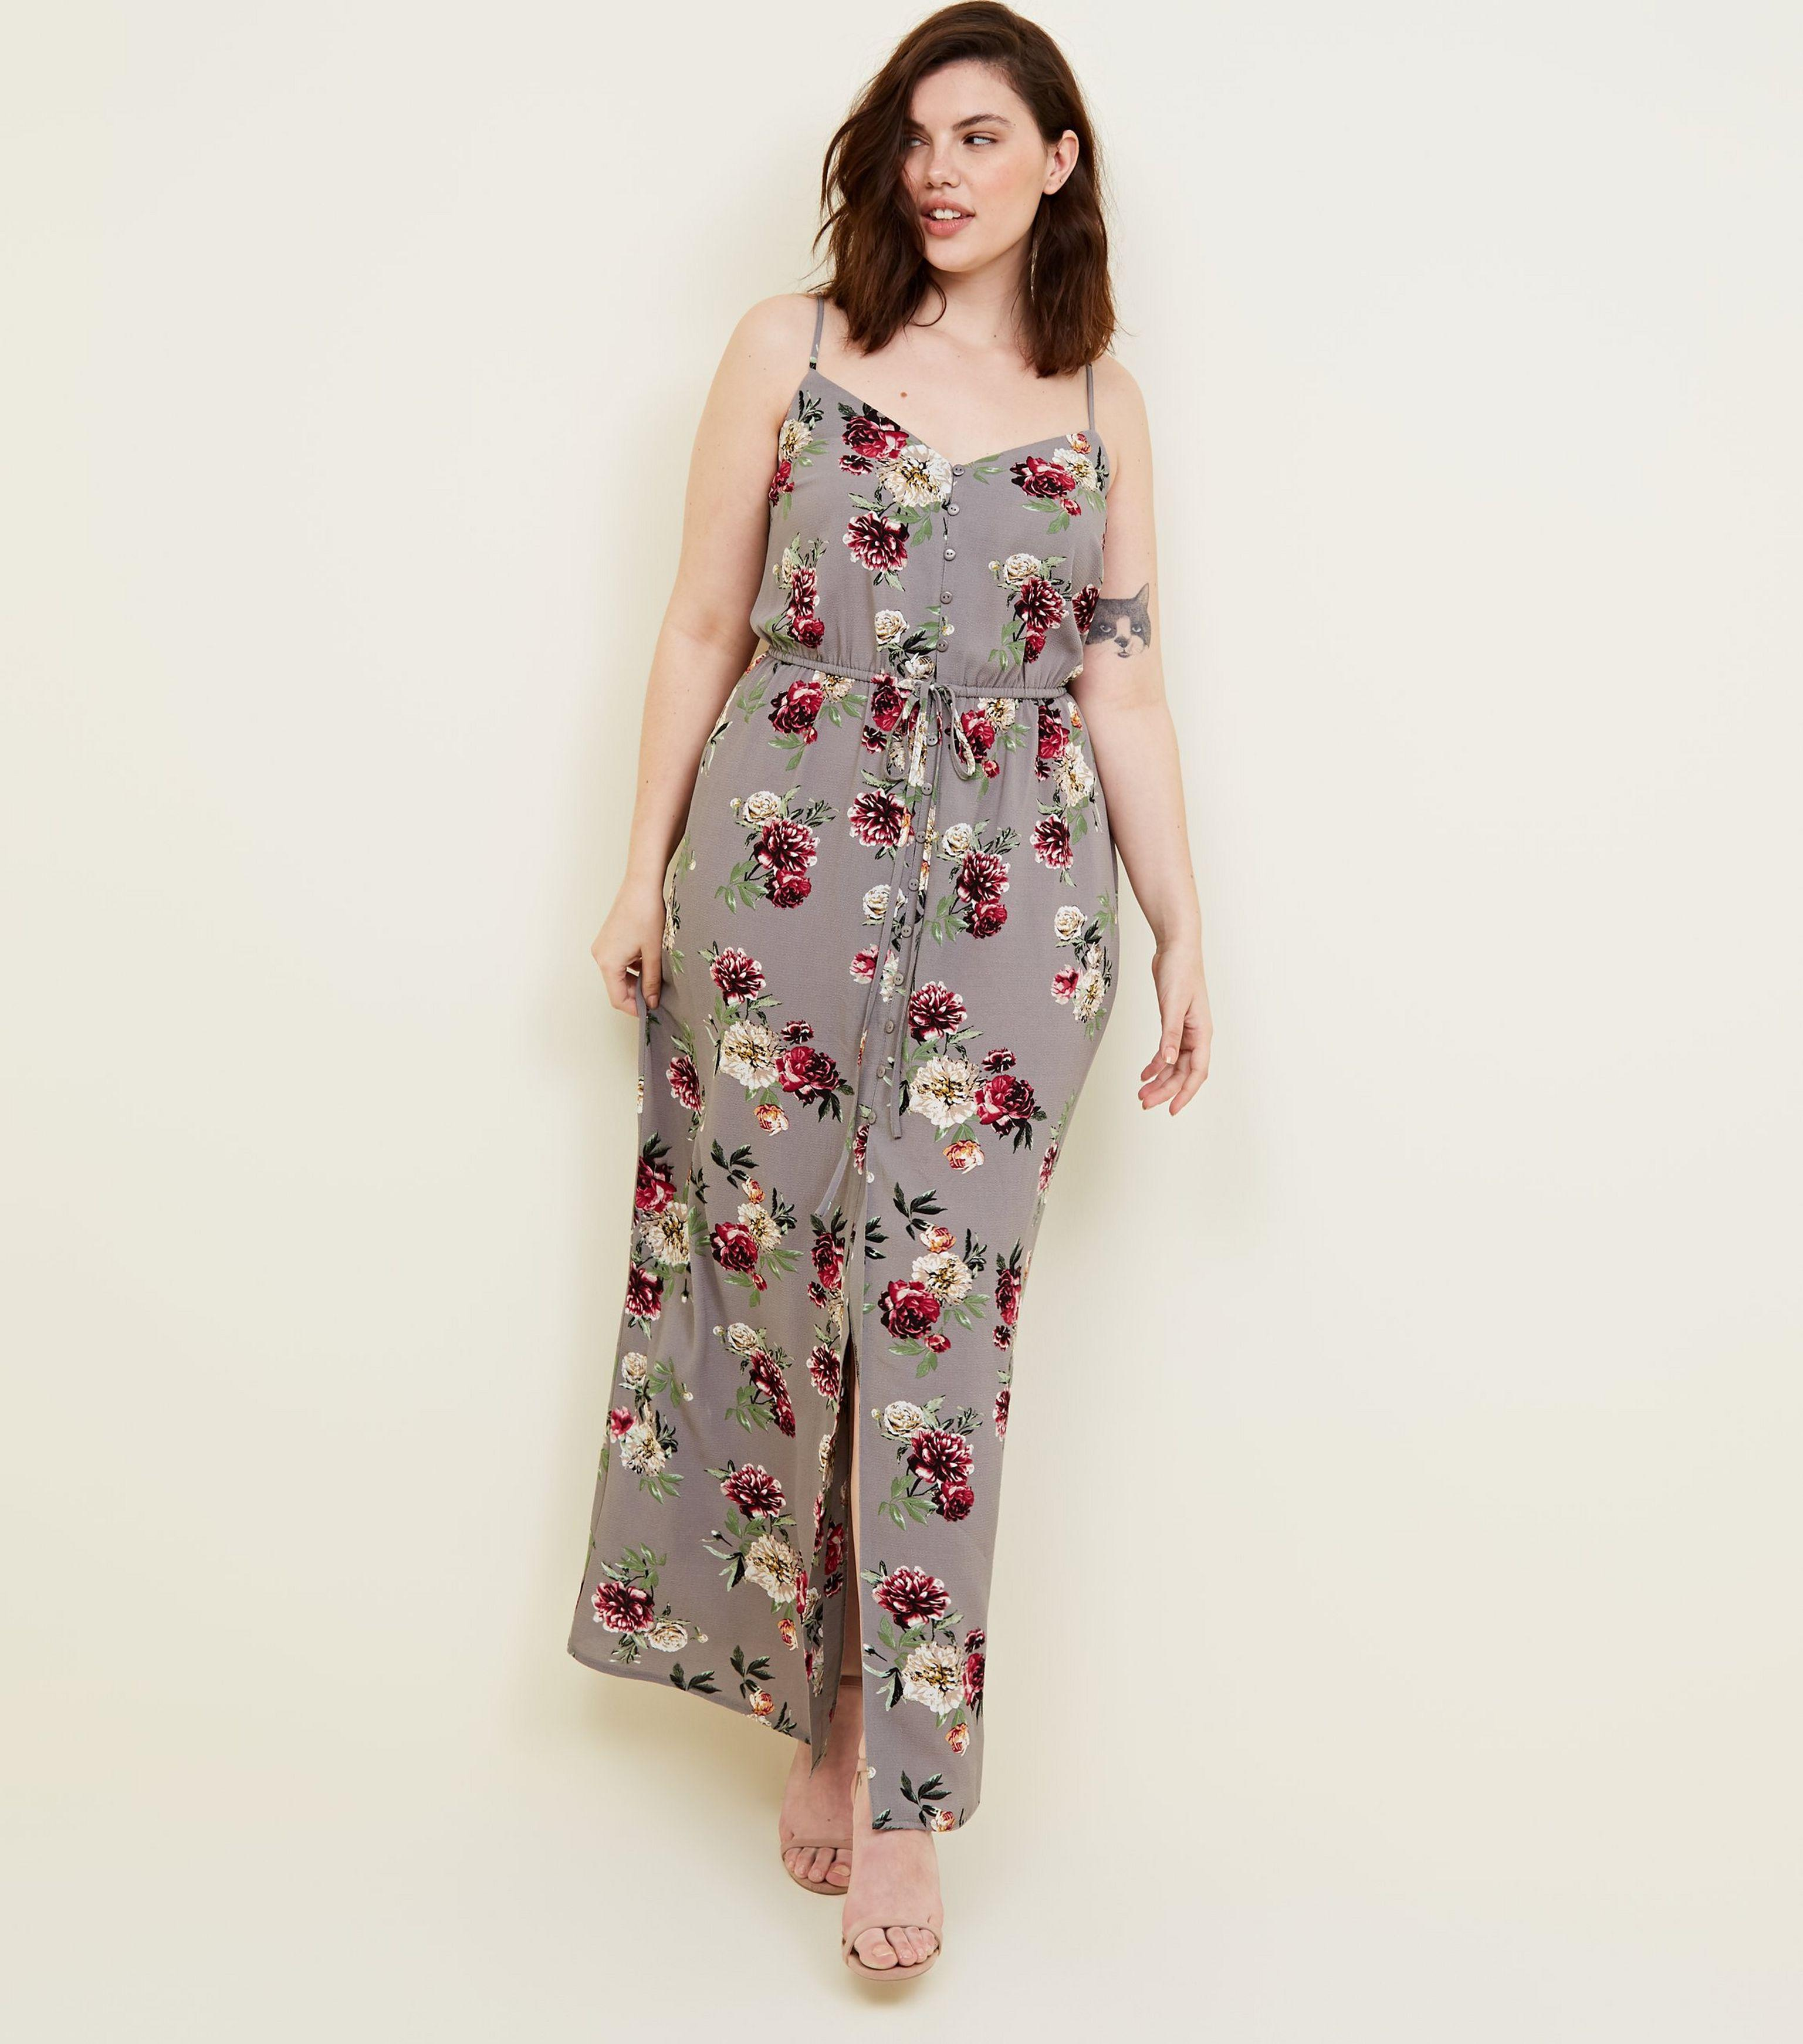 34878dca30 New Look Curves Grey Floral Button Front Maxi Dress in Gray - Lyst